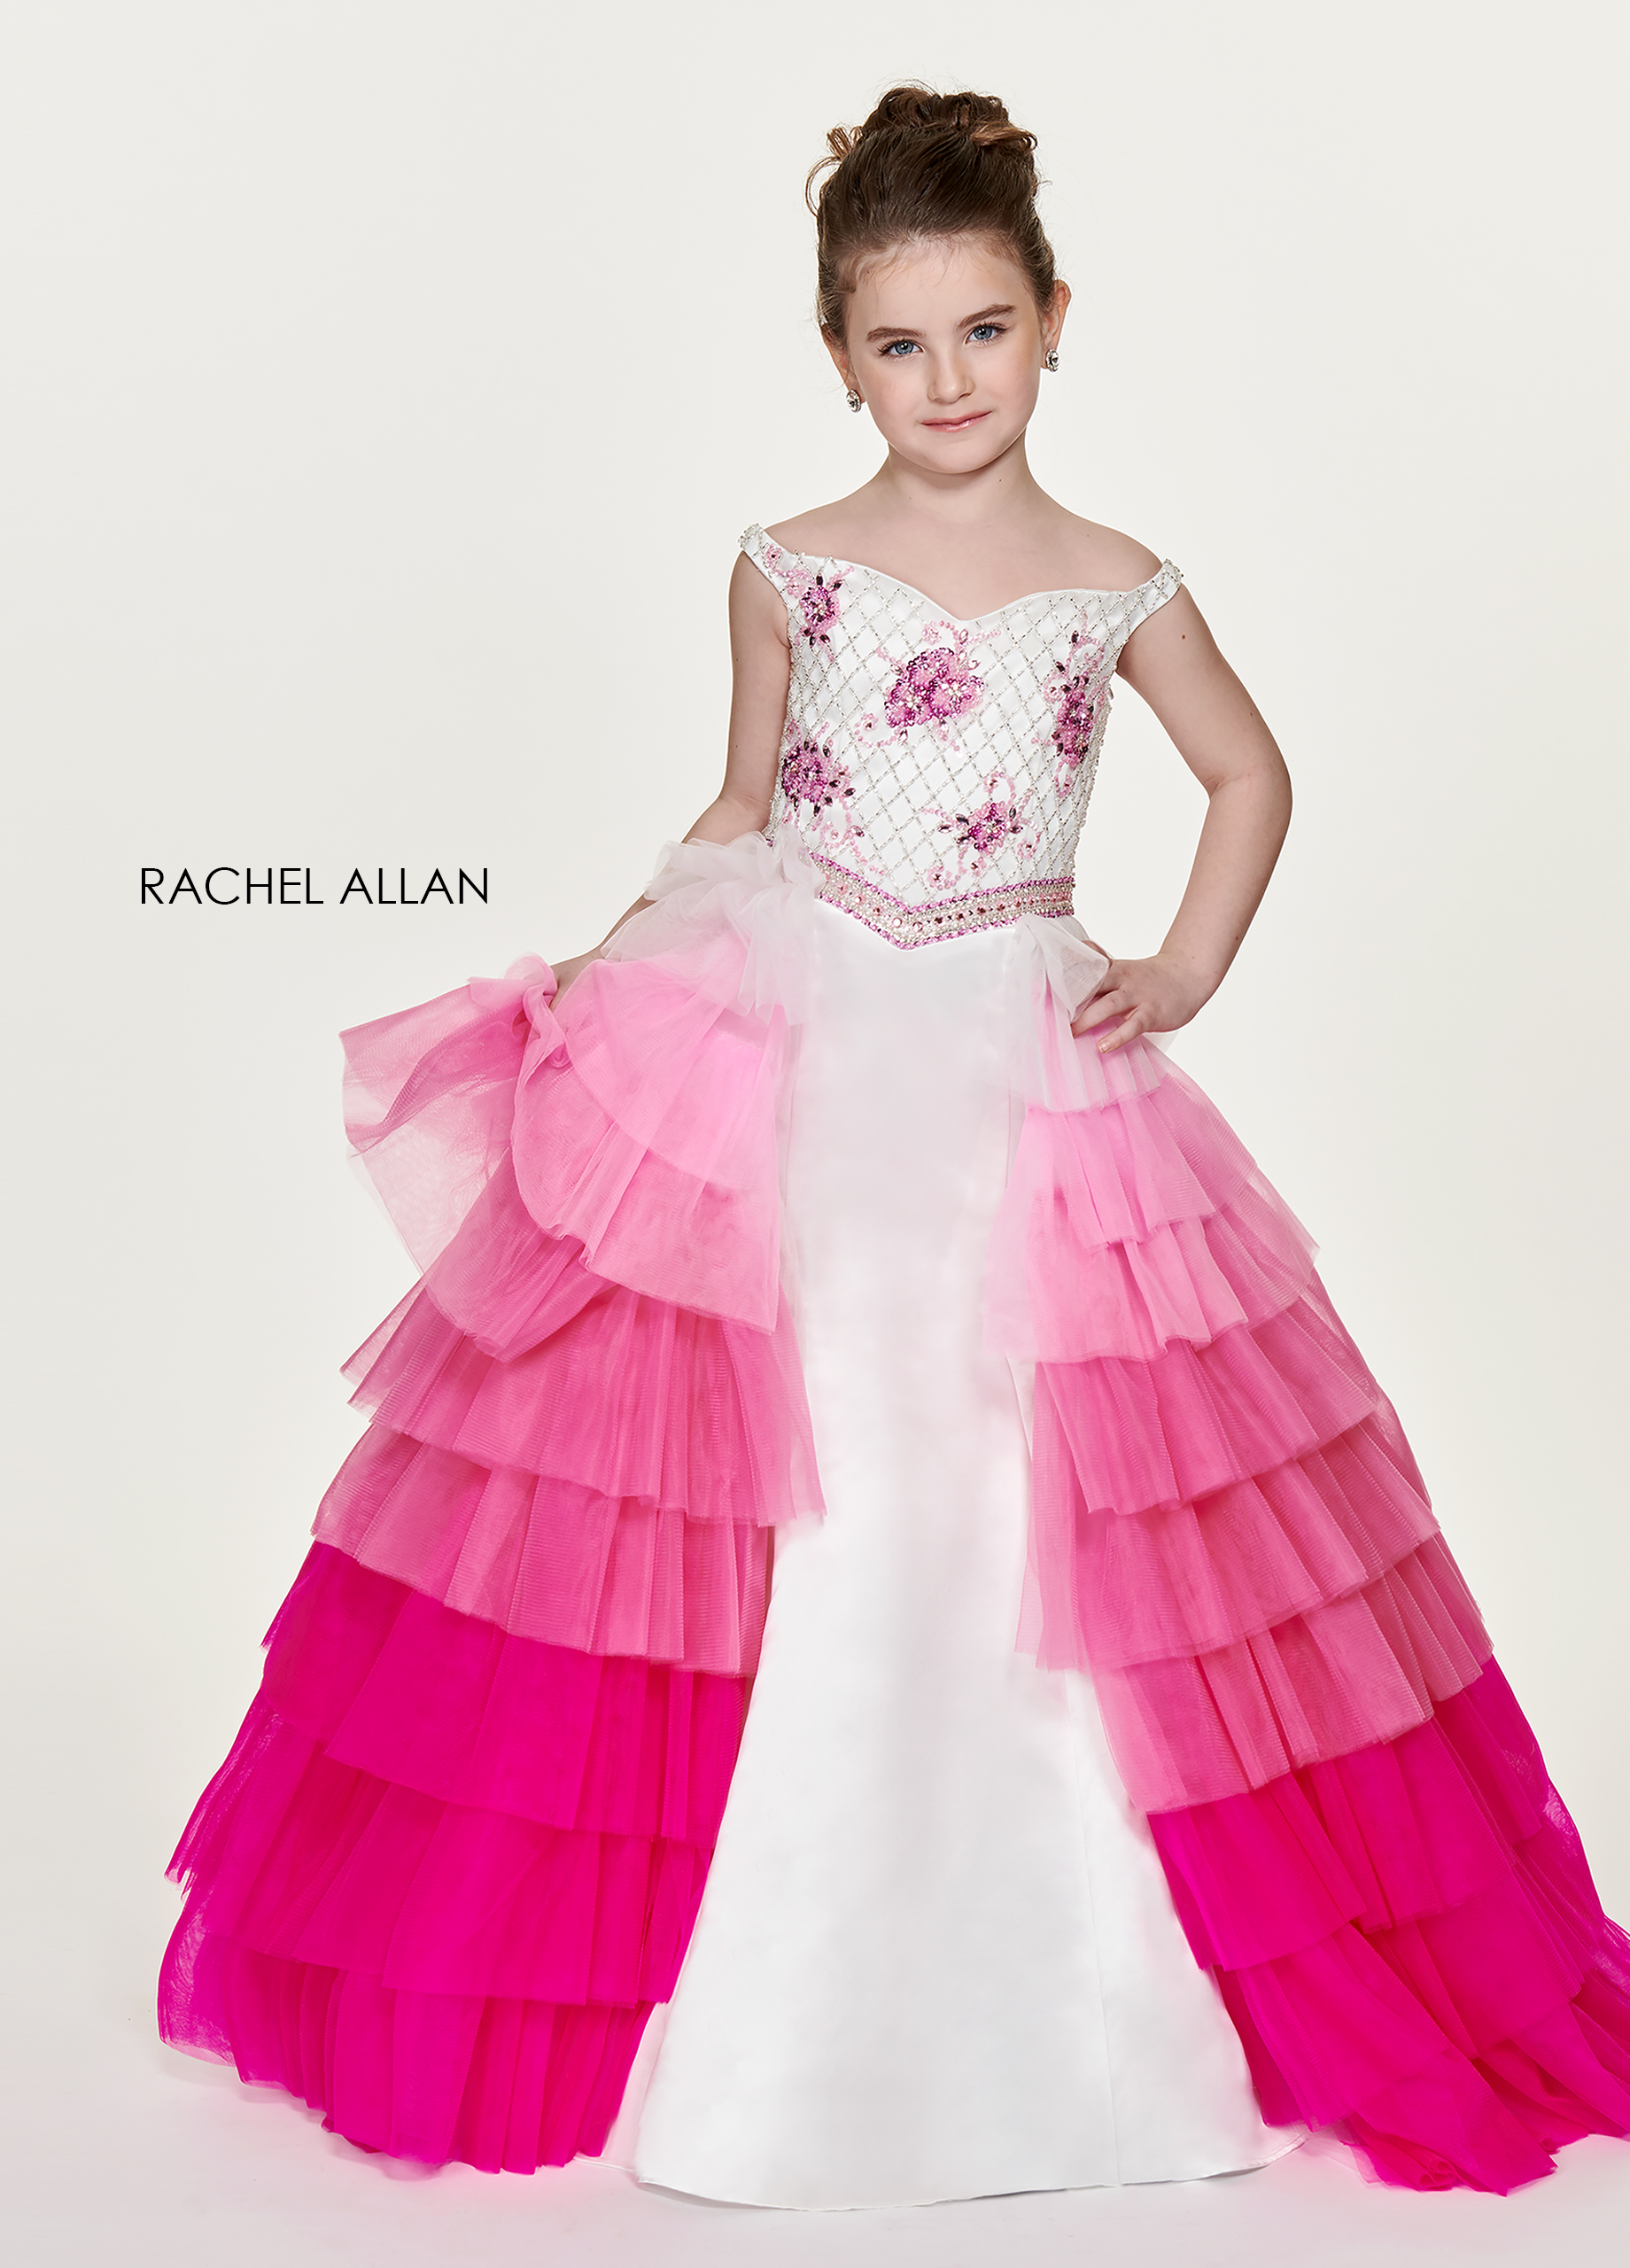 Off The Shoulder Skirt With Overlay Little Girl Pageant Dresses in Pink Color